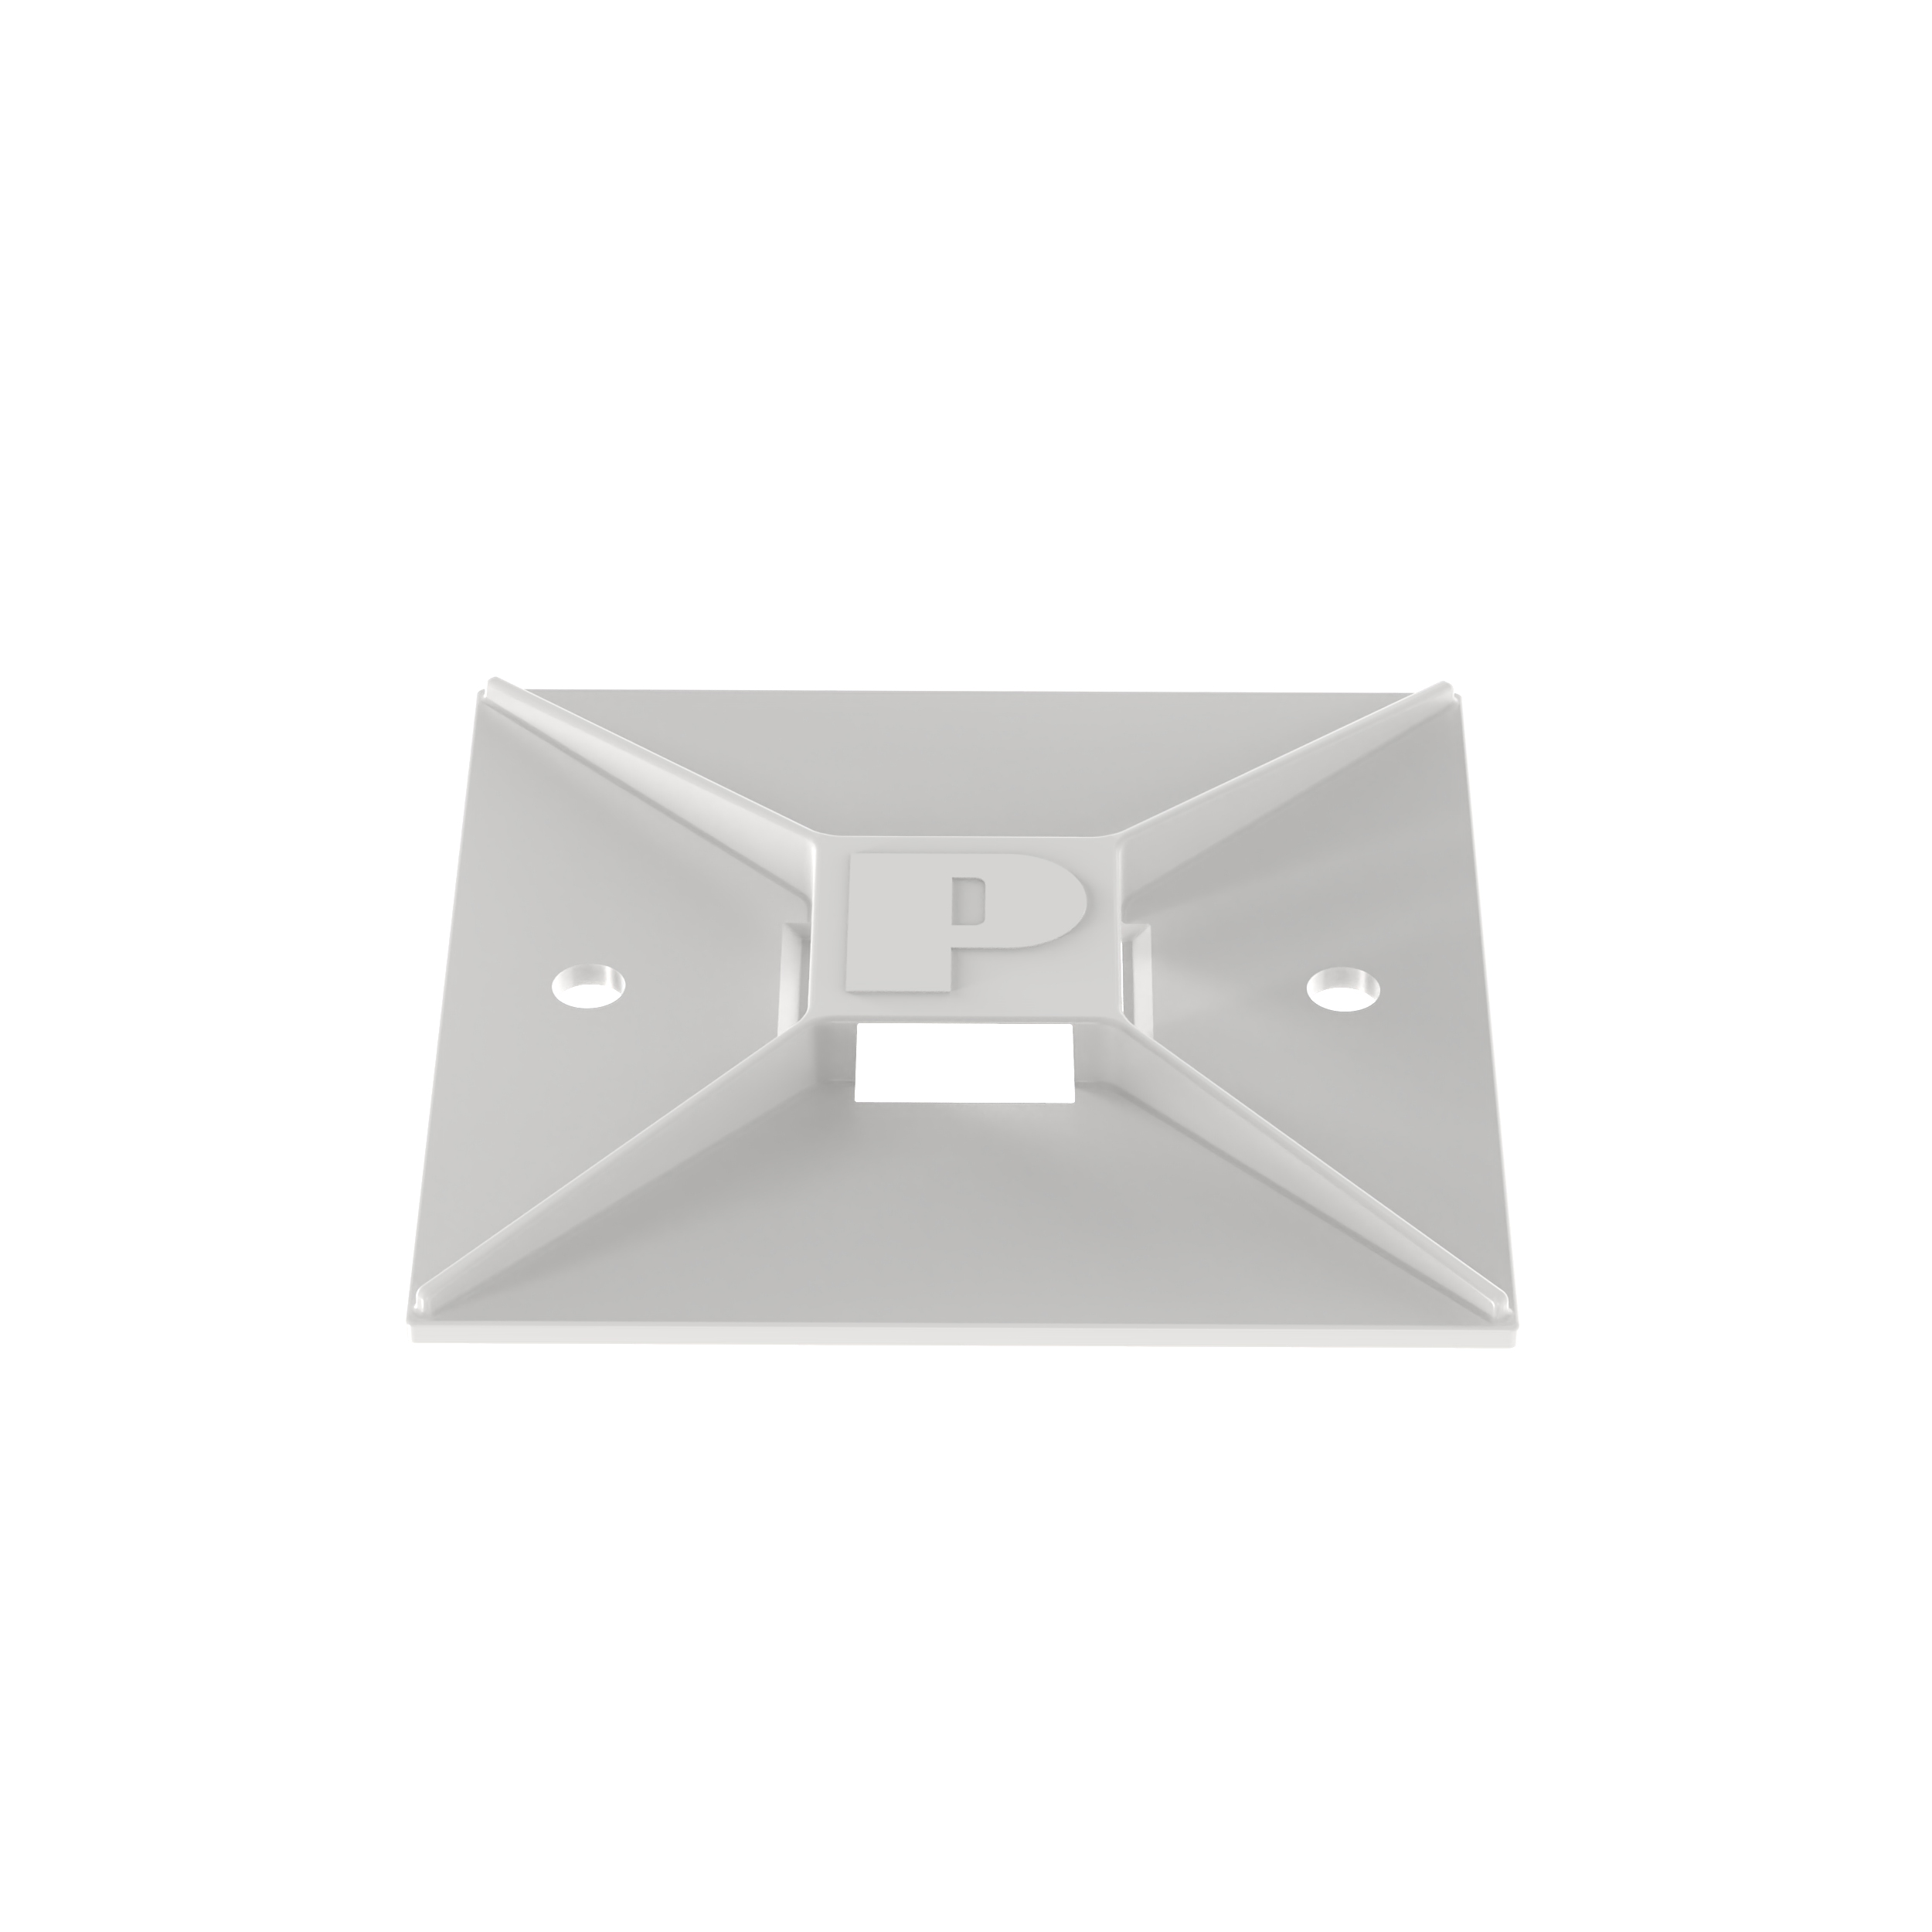 Panduit® ABM3H-A-L Cable Tie Mount, 4-Way, Rubber Adhesive Tape Mount, 0.35 in W Tie, Nylon 6.6, White